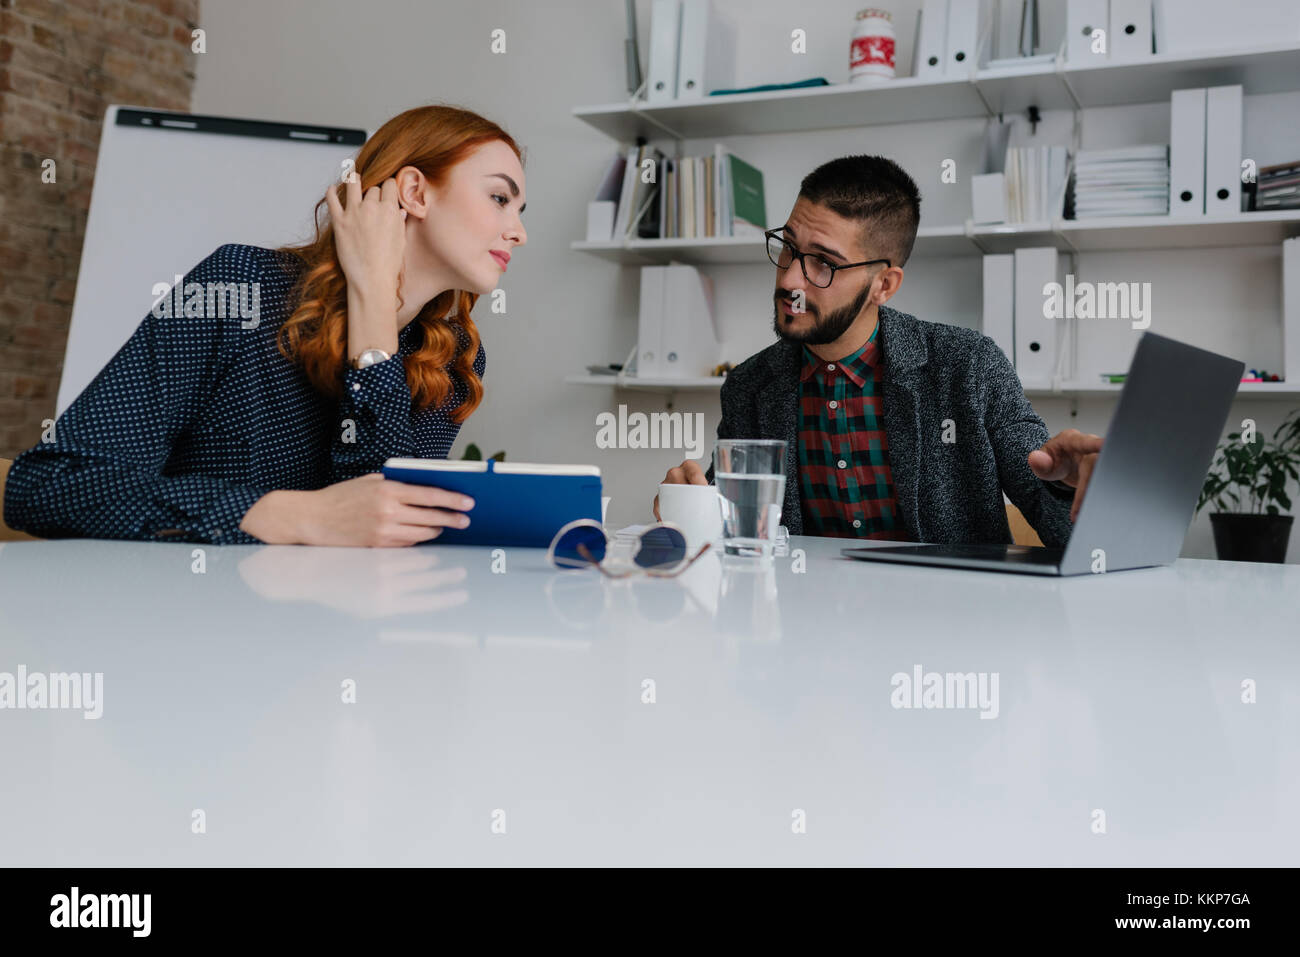 Human resource manager explaining the work dynamics to a new employee - Stock Image